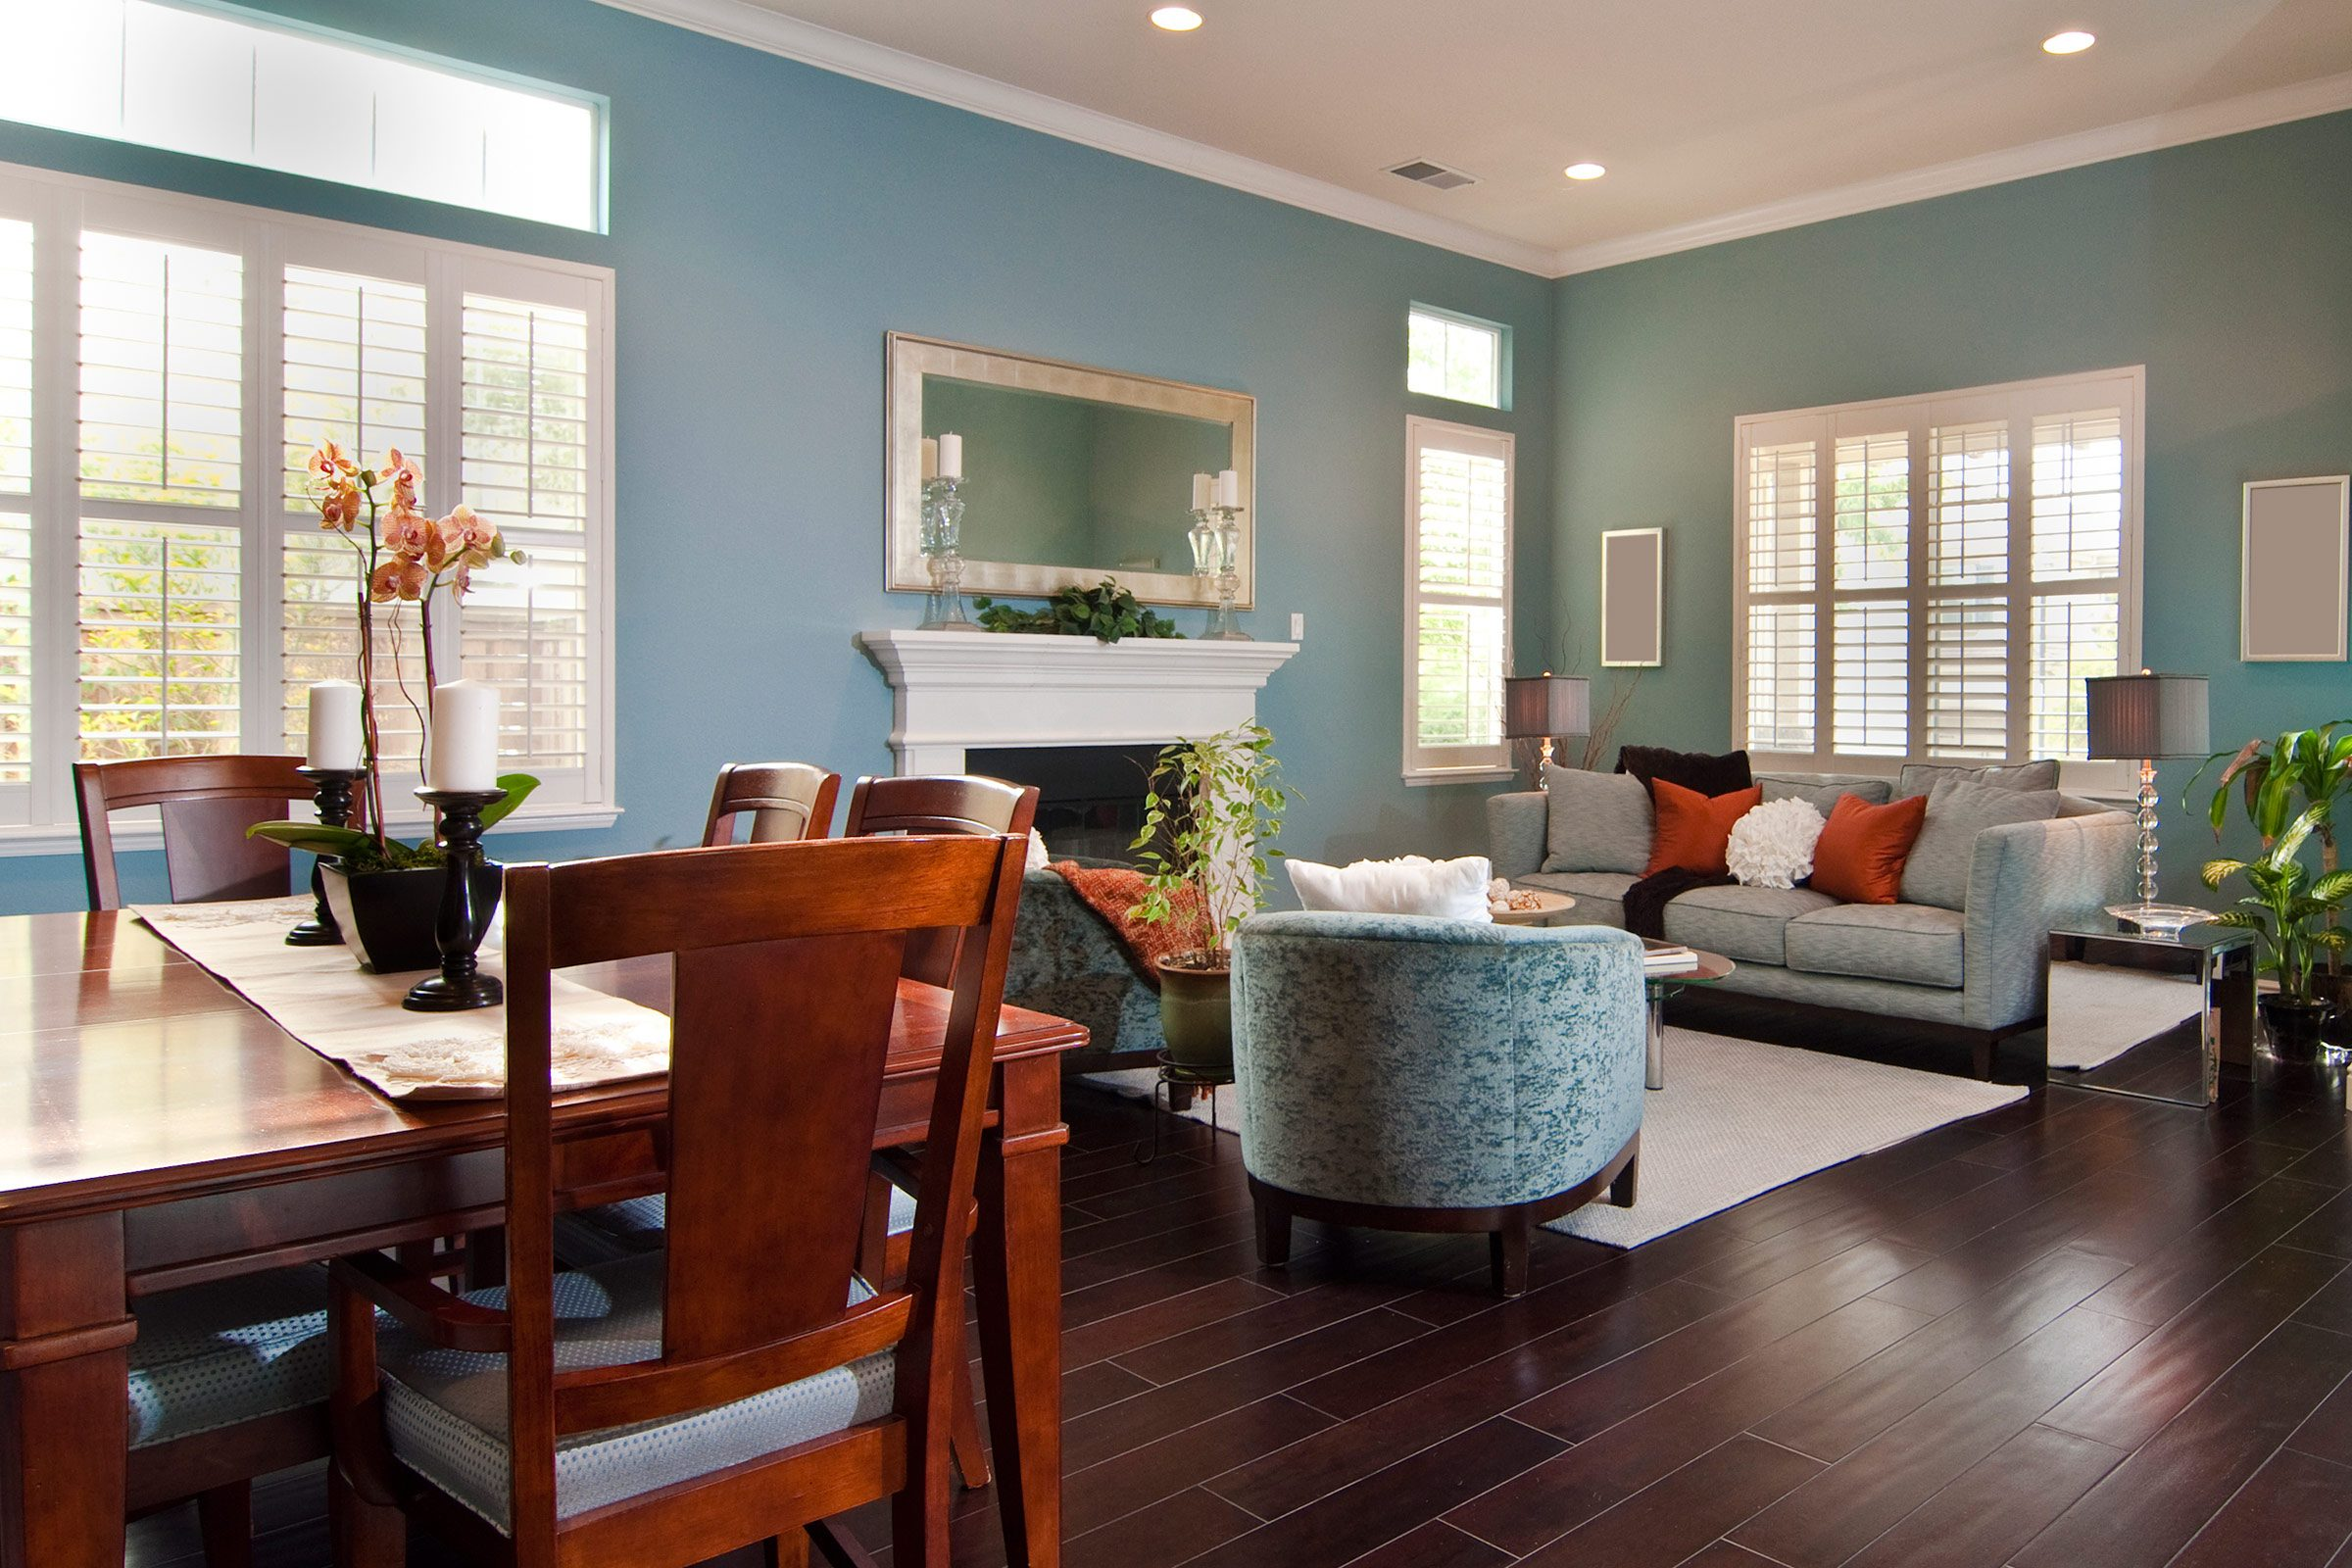 How to apply the psychology of color in the interior of the house